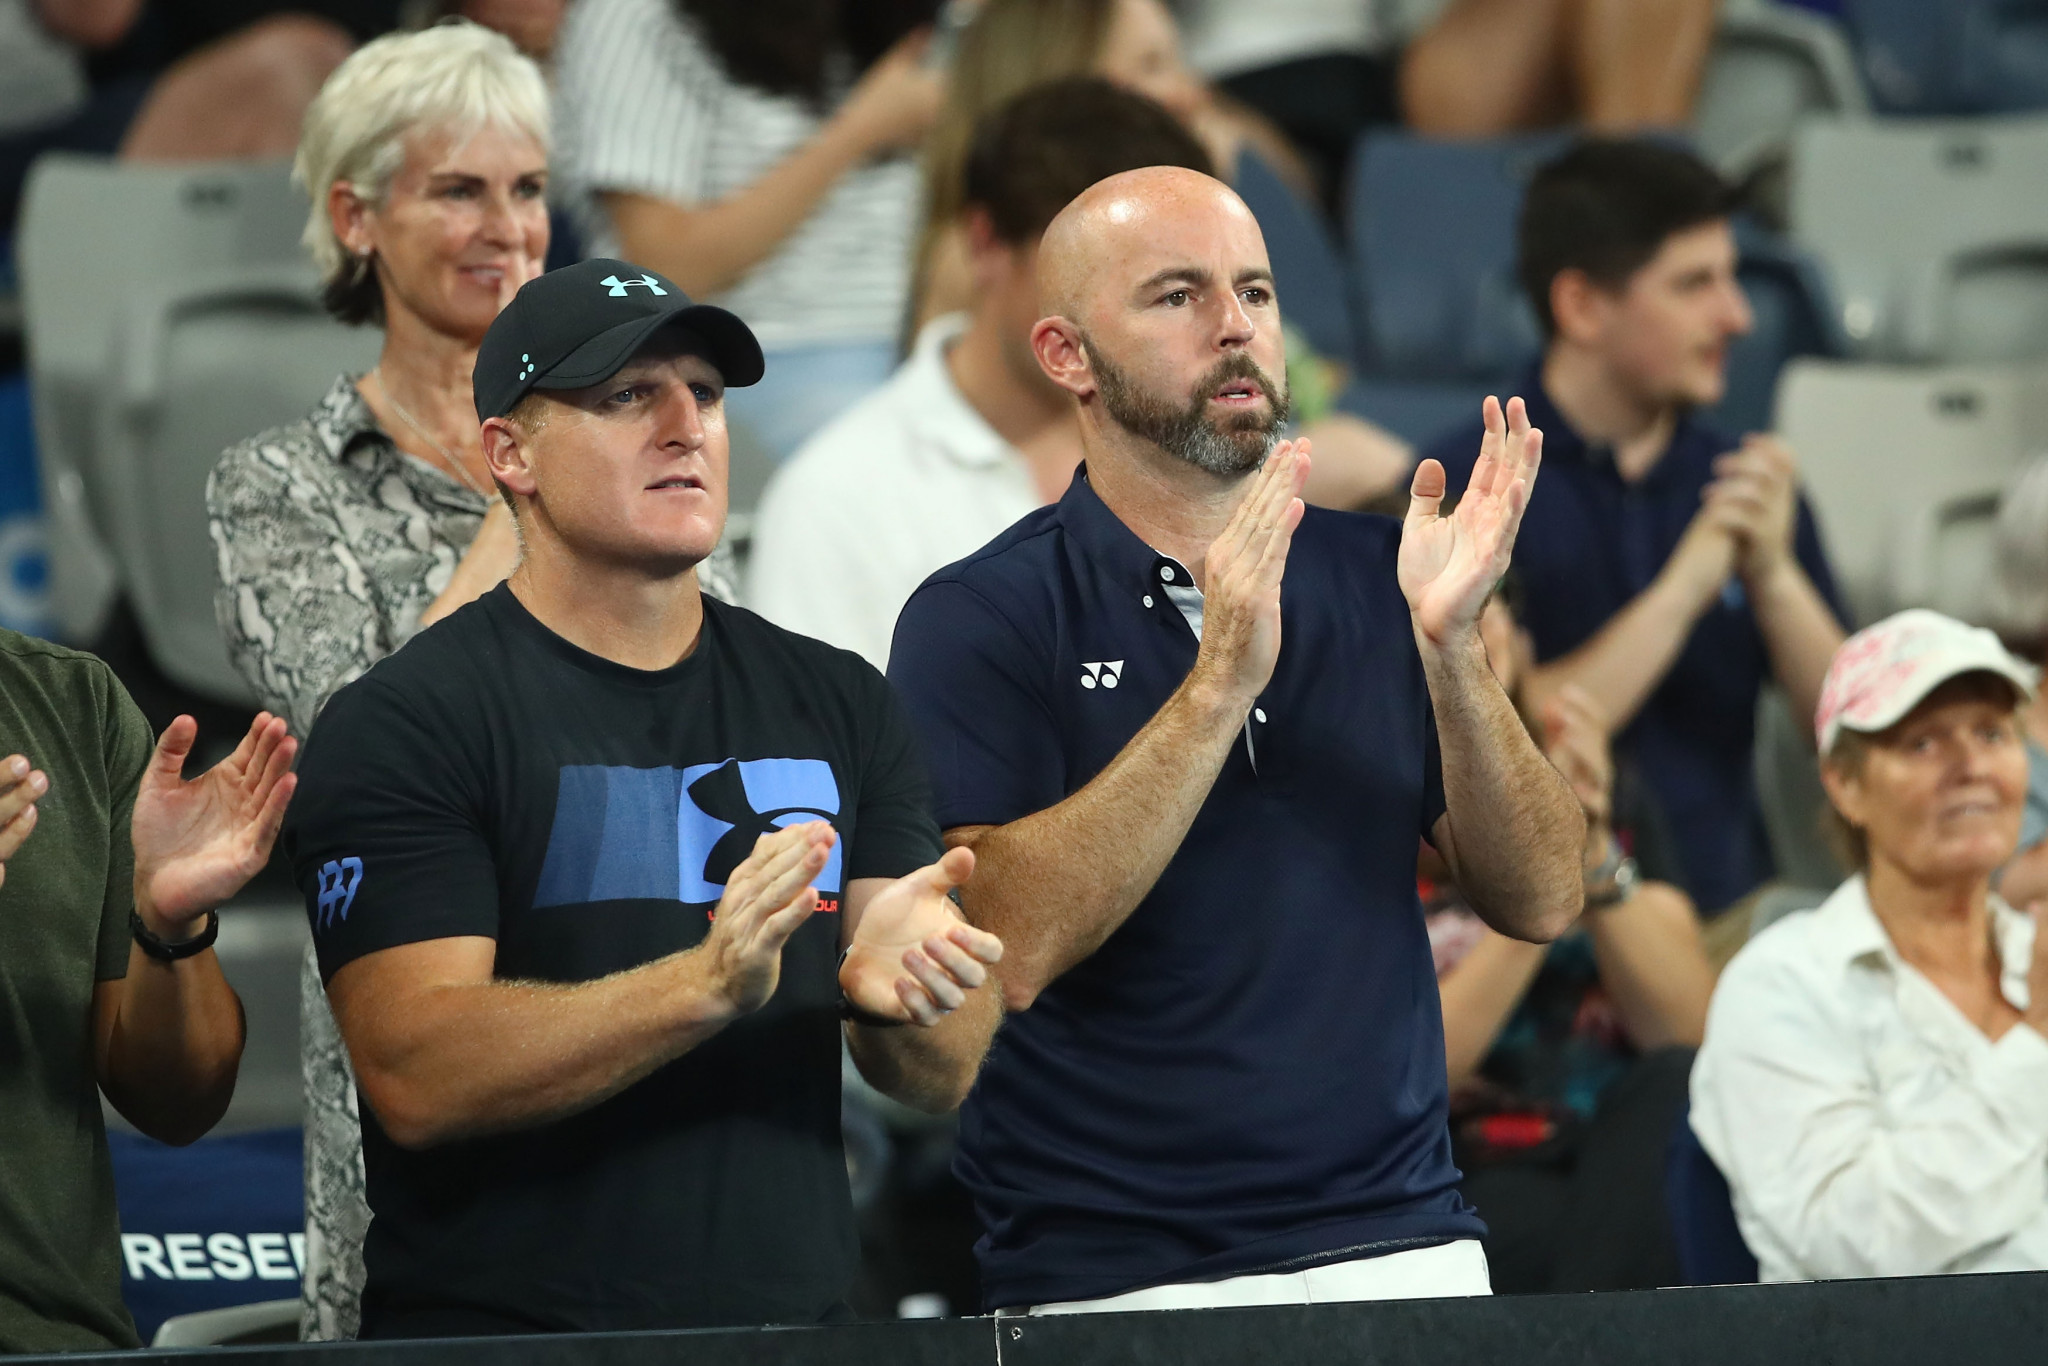 The International Tennis Federation has today announced the appointment of Jamie Delgado, right, as a player relations consultant ©Getty Images